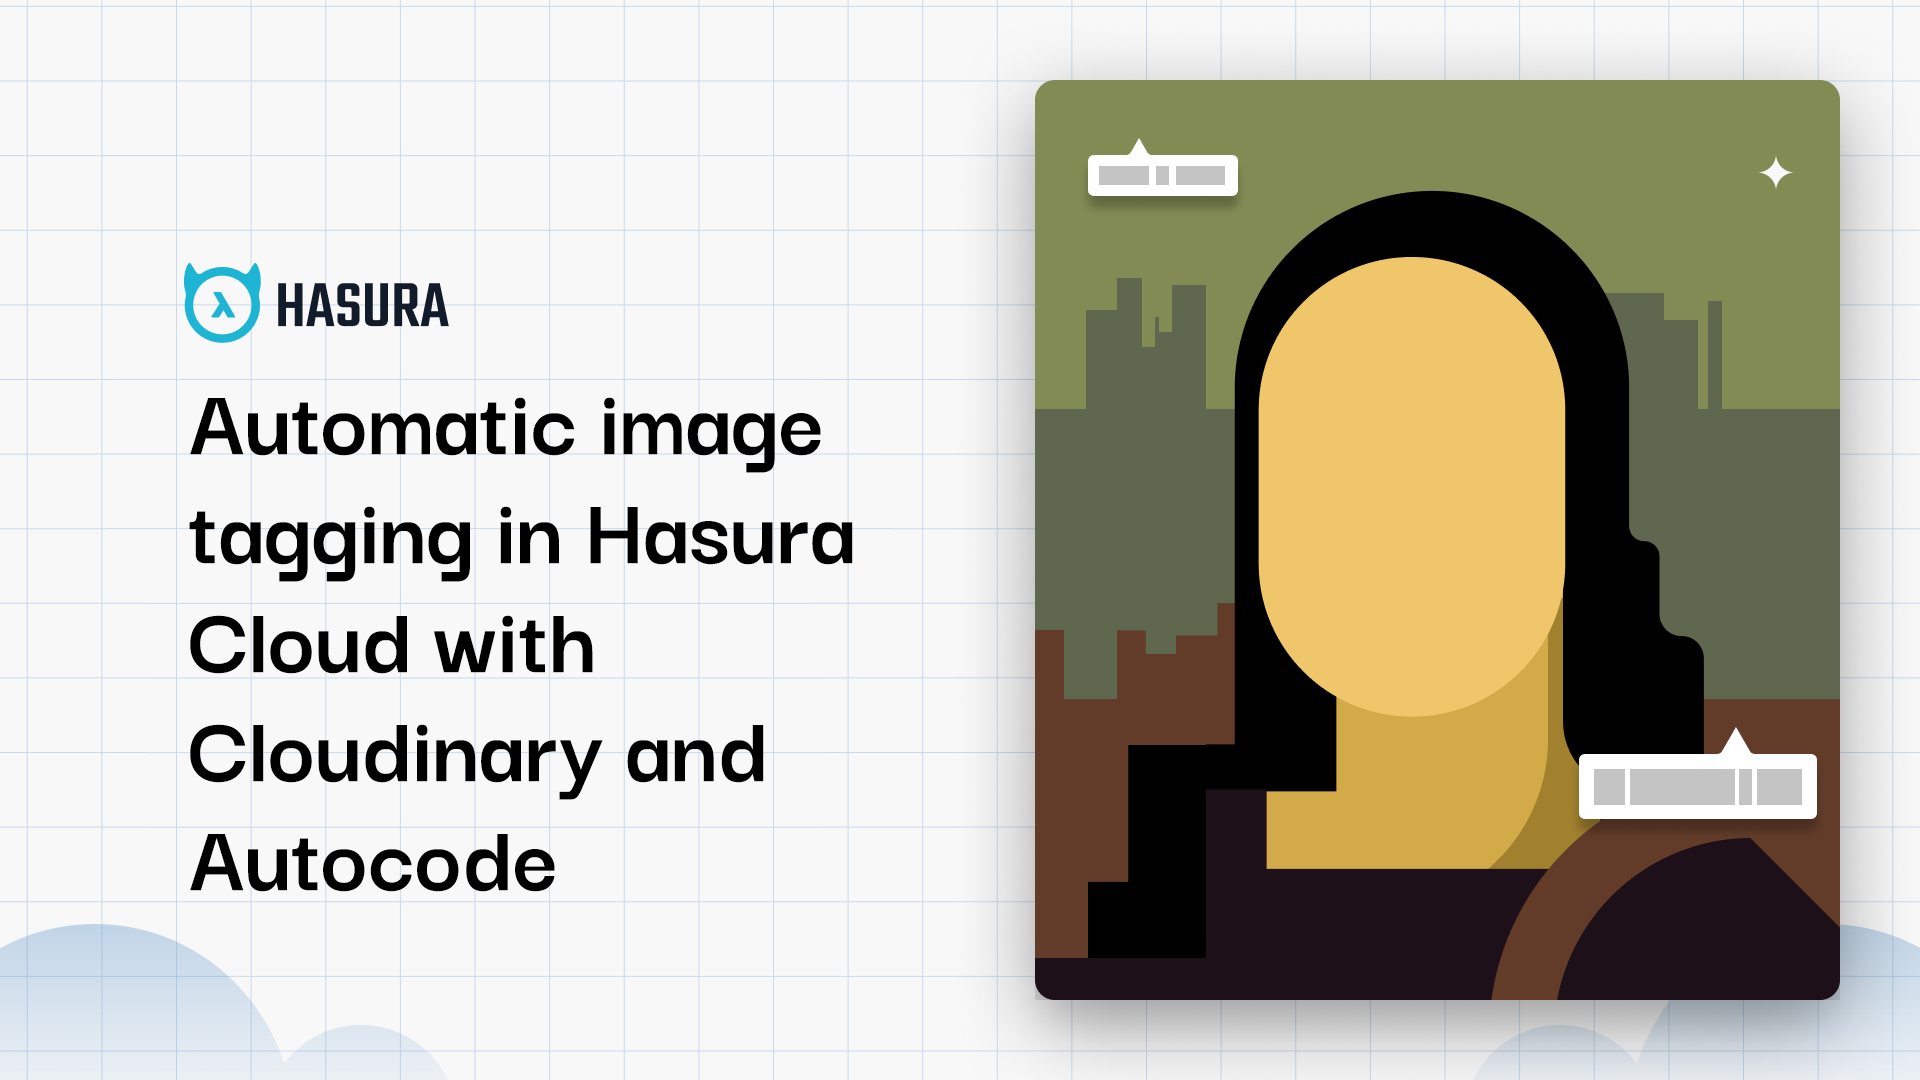 Automatic image tagging in Hasura Cloud with Cloudinary and Autocode